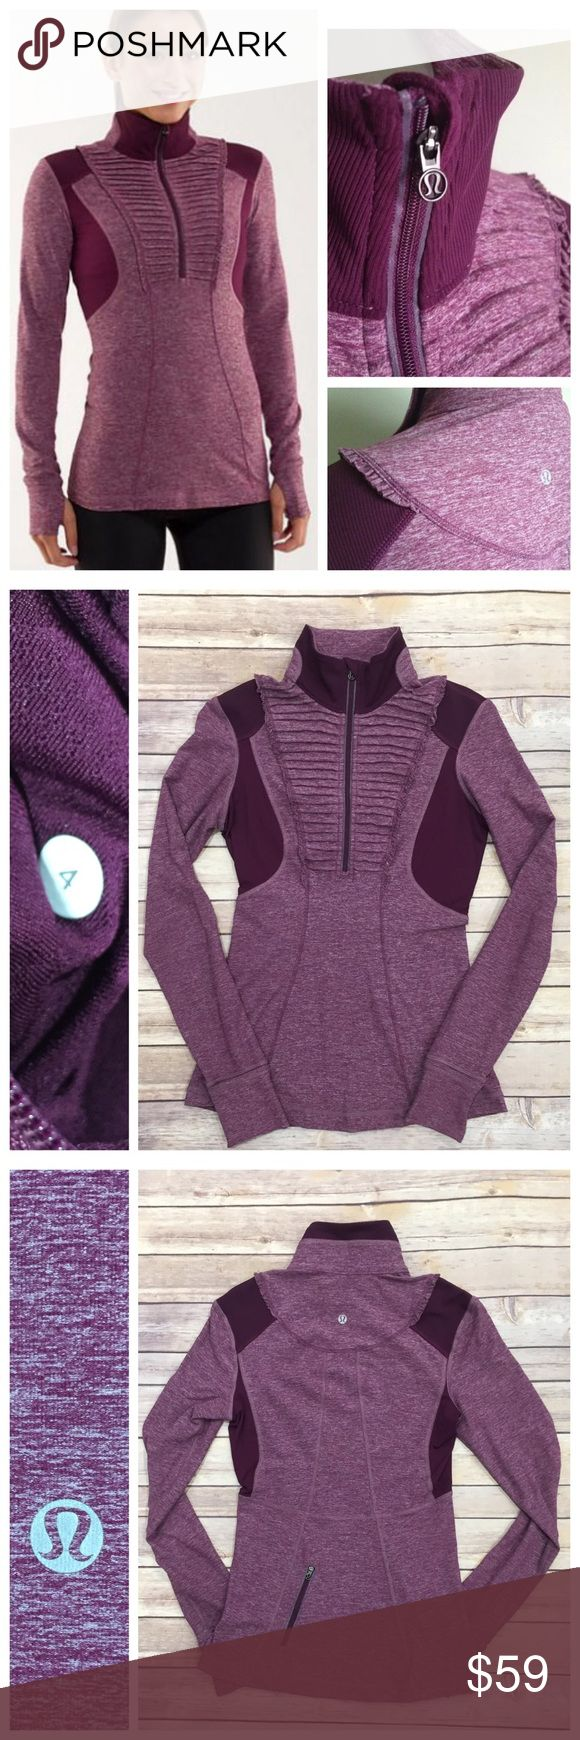 Lululemon Run Your Heart Out Heathered Plum. Excellent preloved condition. Body skimming mid-layer. Rulu and Circle mesh fabrication. Cuffins and Thumbholes. No trades. No PayPal. Price firm unless bundled. lululemon athletica Tops Tees - Long Sleeve